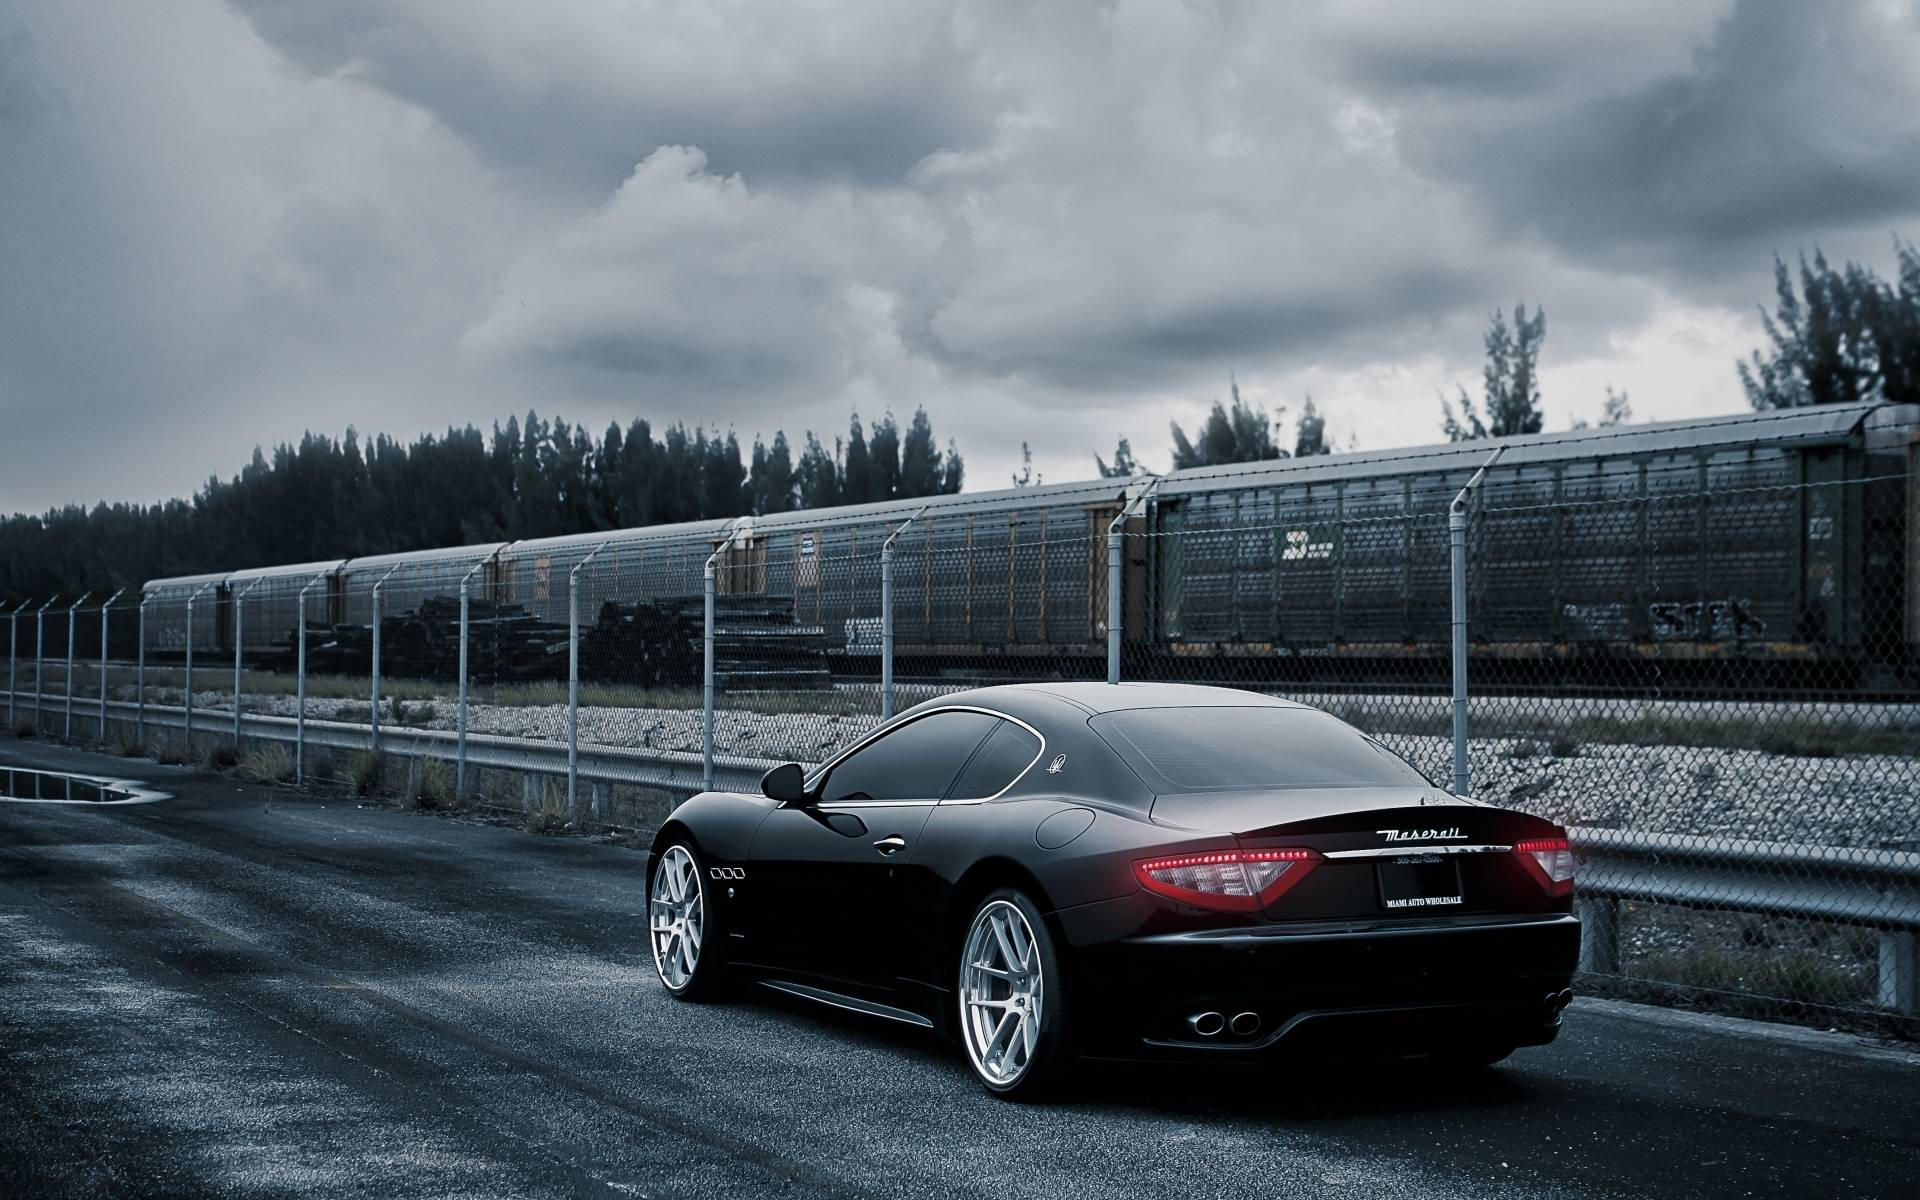 maserati quattroporte hd widescreen - photo #26